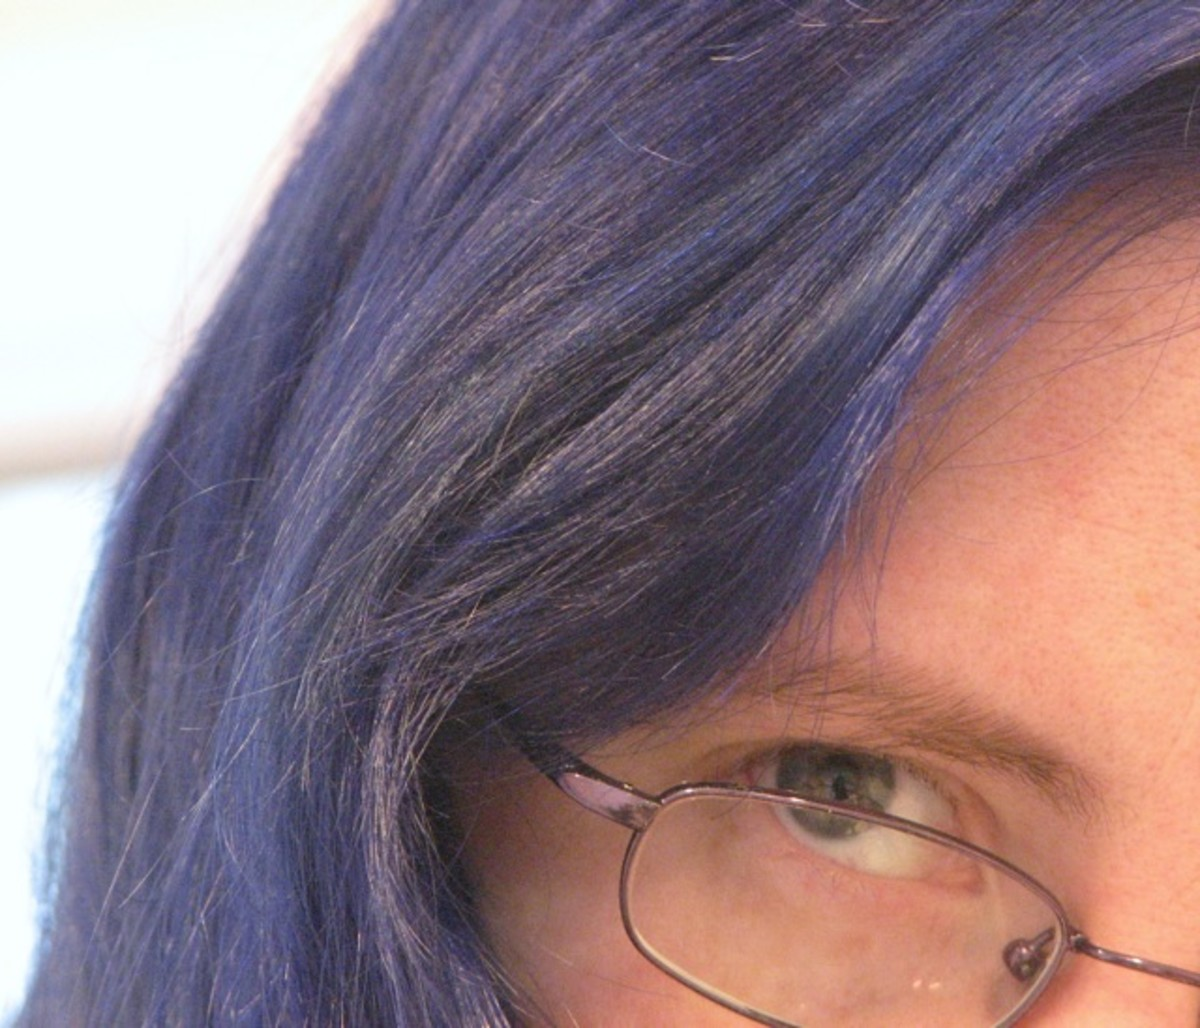 Blue hair, matching my glasses.